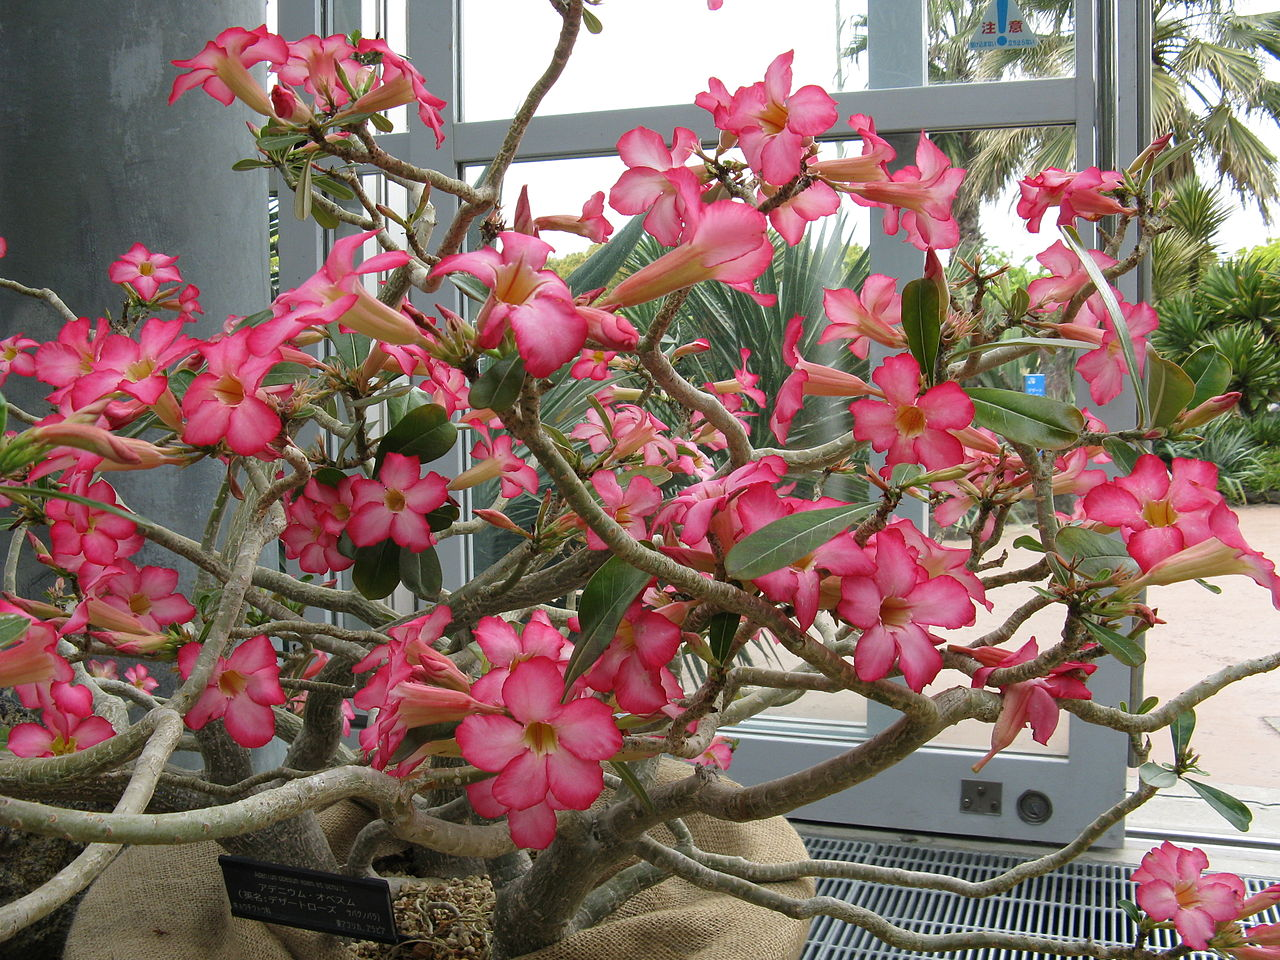 Unusual houseplant seeds from around the world 3557 desert rose adenium obesum izmirmasajfo